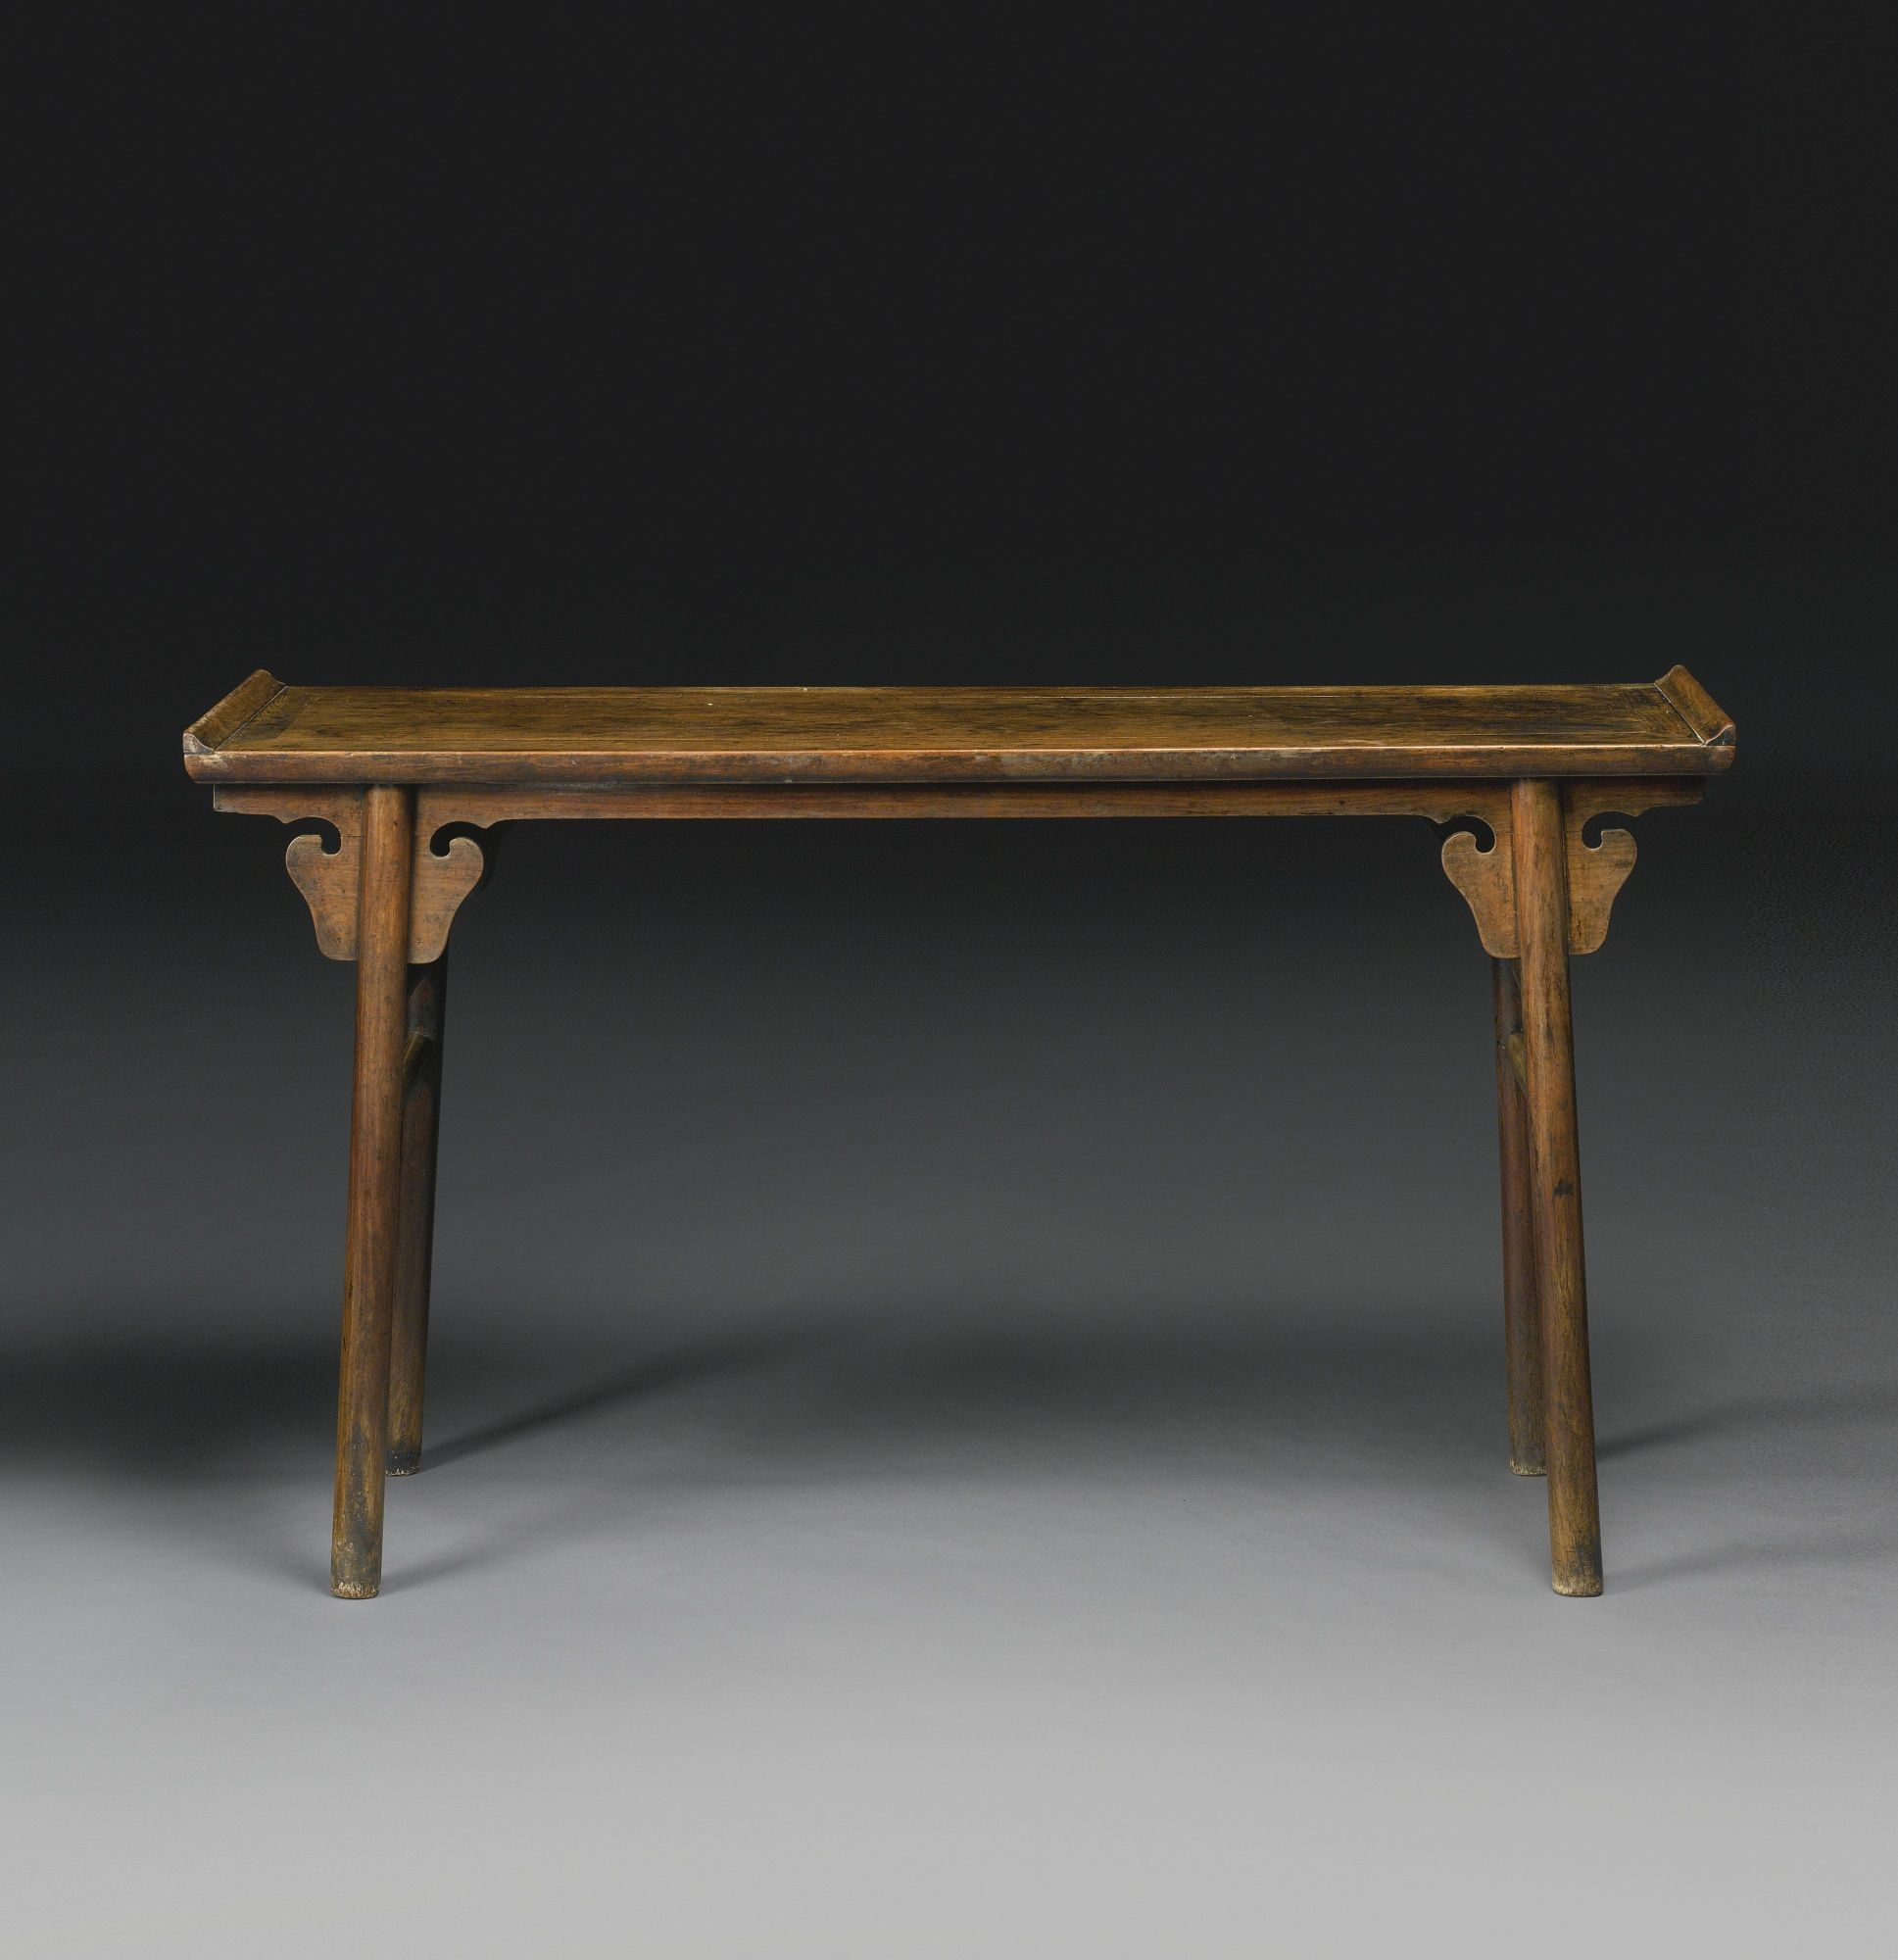 A Huanghuali Recessed Leg Table (qiaotouan), Ming Dynasty China, 16th